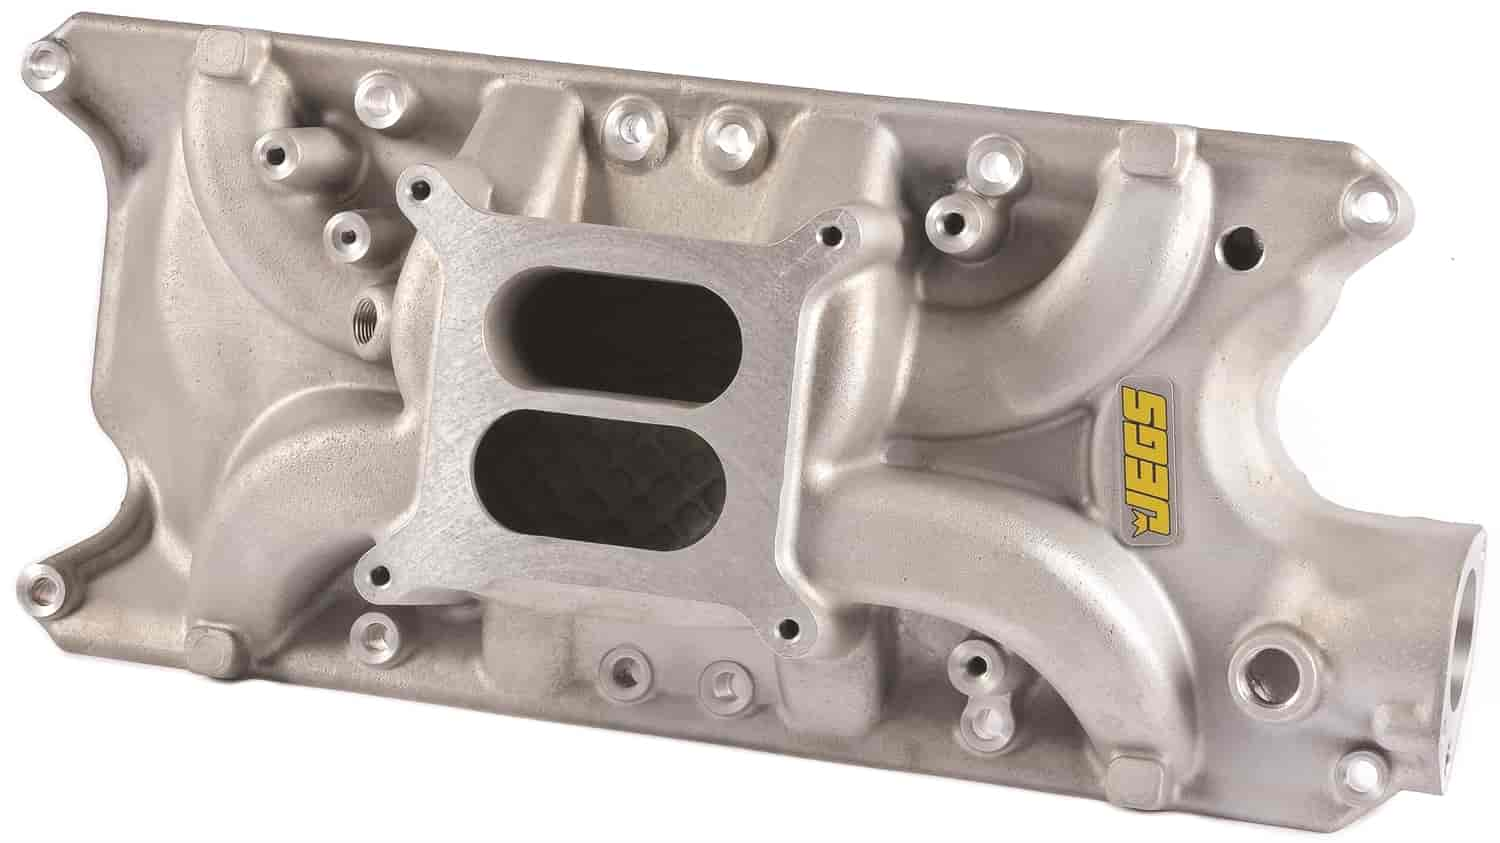 JEGS Performance Products 513020 - JEGS Champion Series 331 Performance Dual Plane Aluminum Intake Manifolds